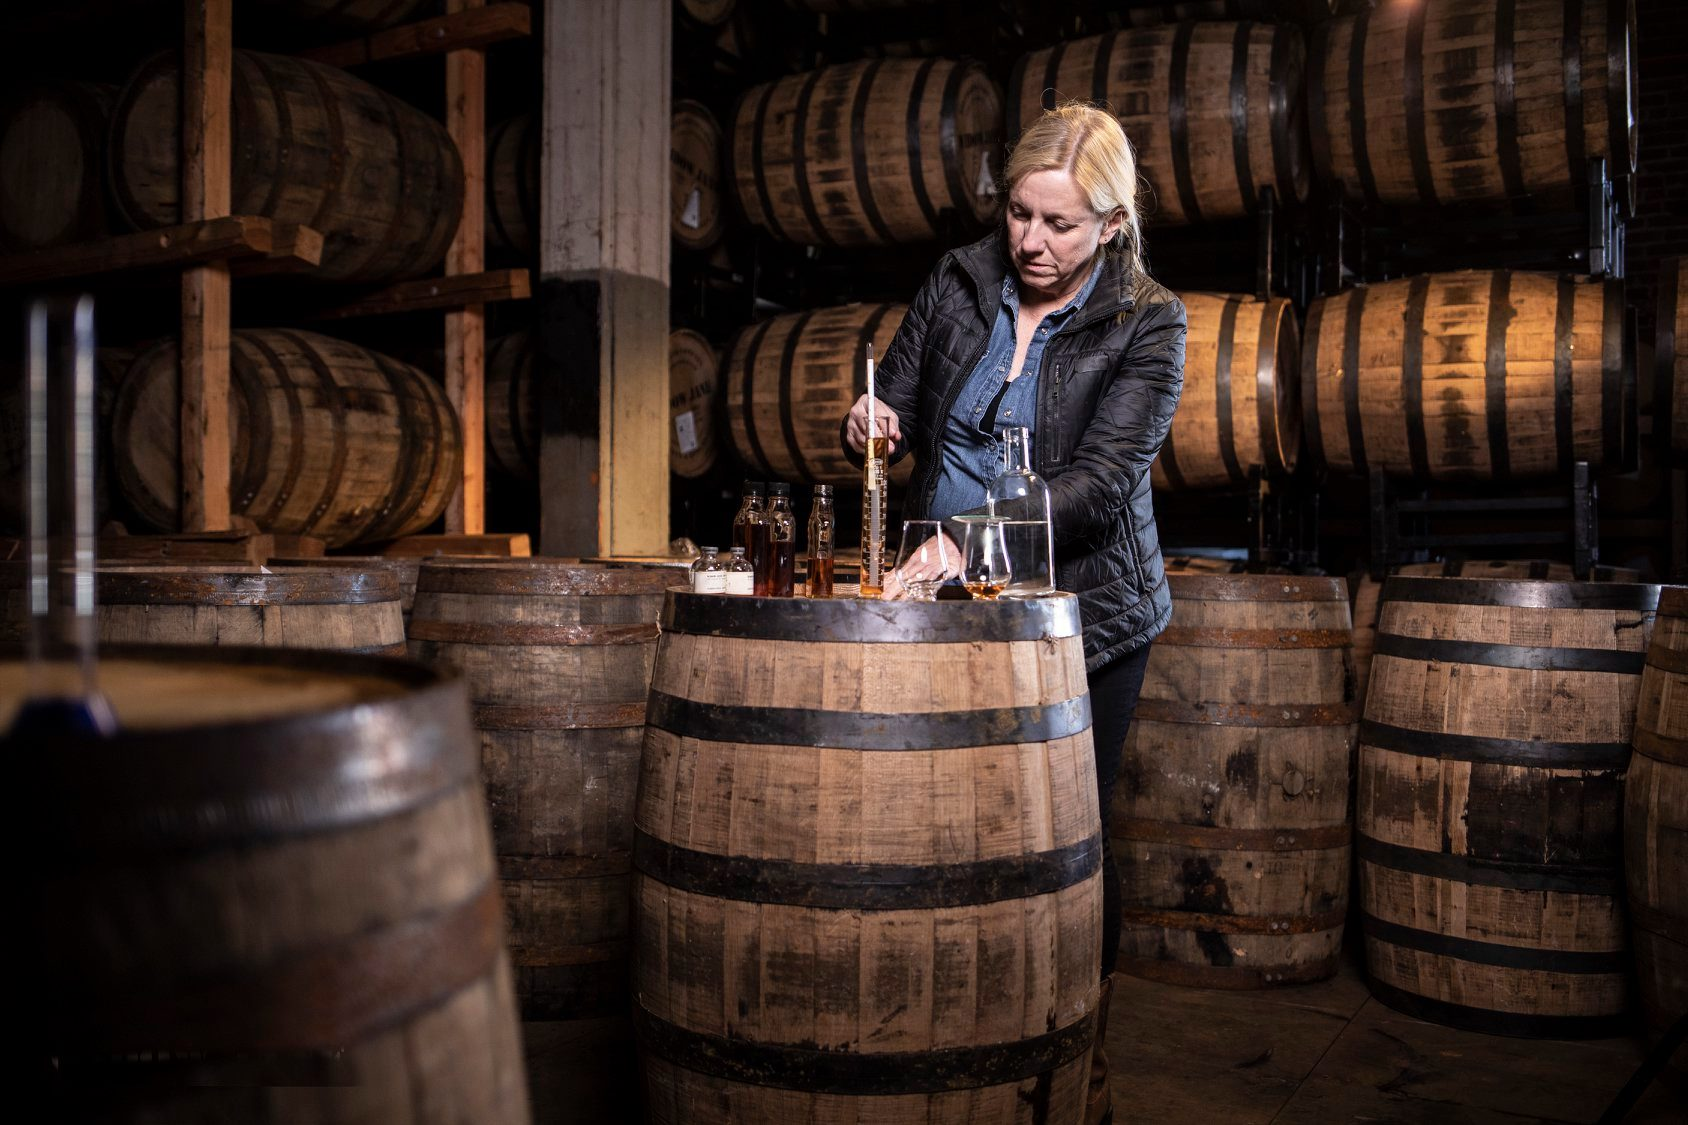 Widow Jane - Brooklyn Distiller to Lead Bourbon Session at Ripy House